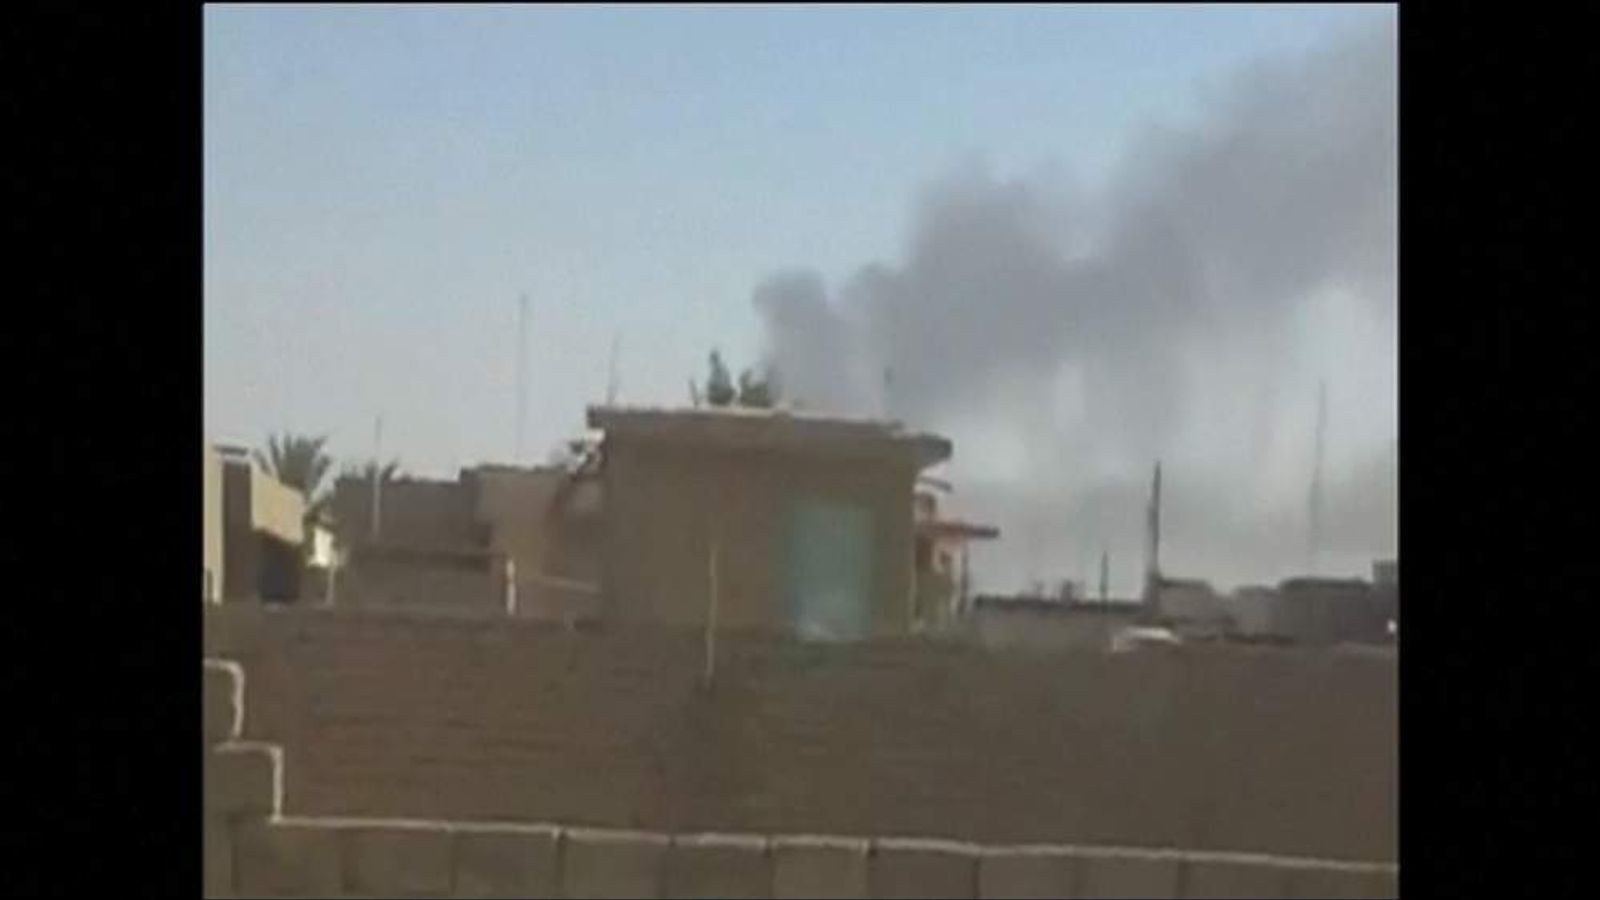 Baiji Iraq oil refinery attack